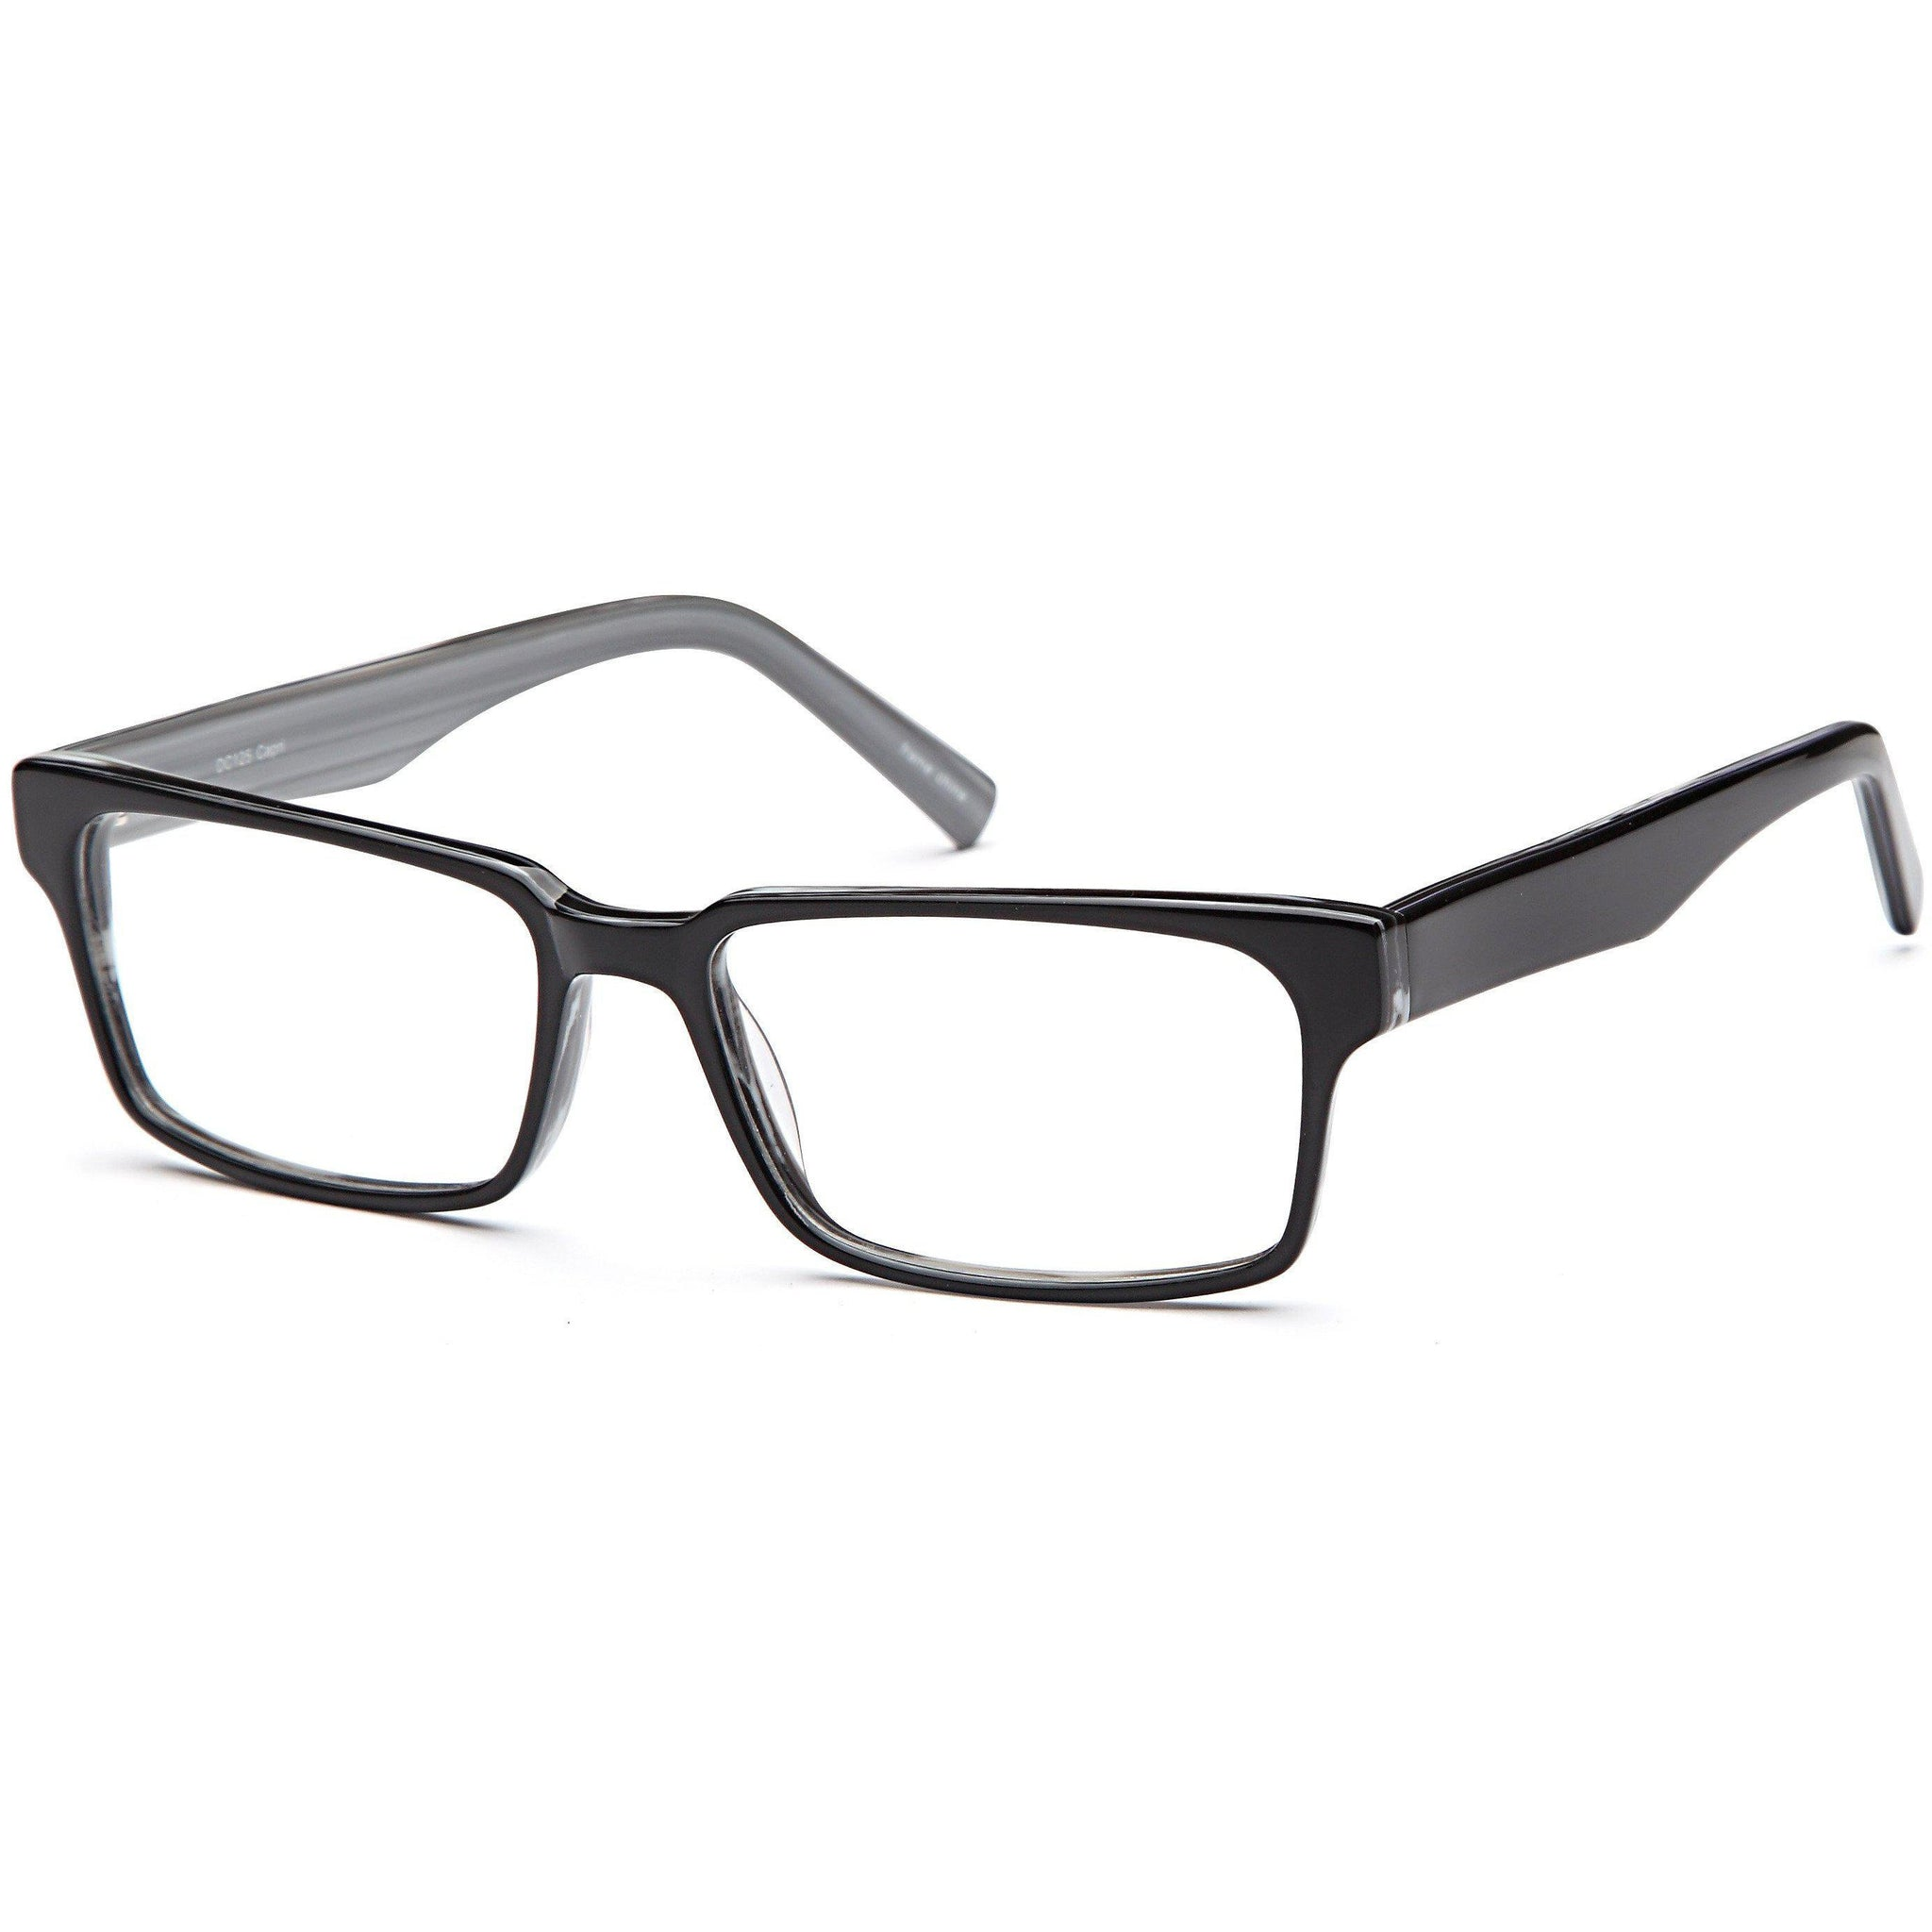 Di Caprio Prescription Glasses DC 125 Eyeglasses Frame - timetoshade